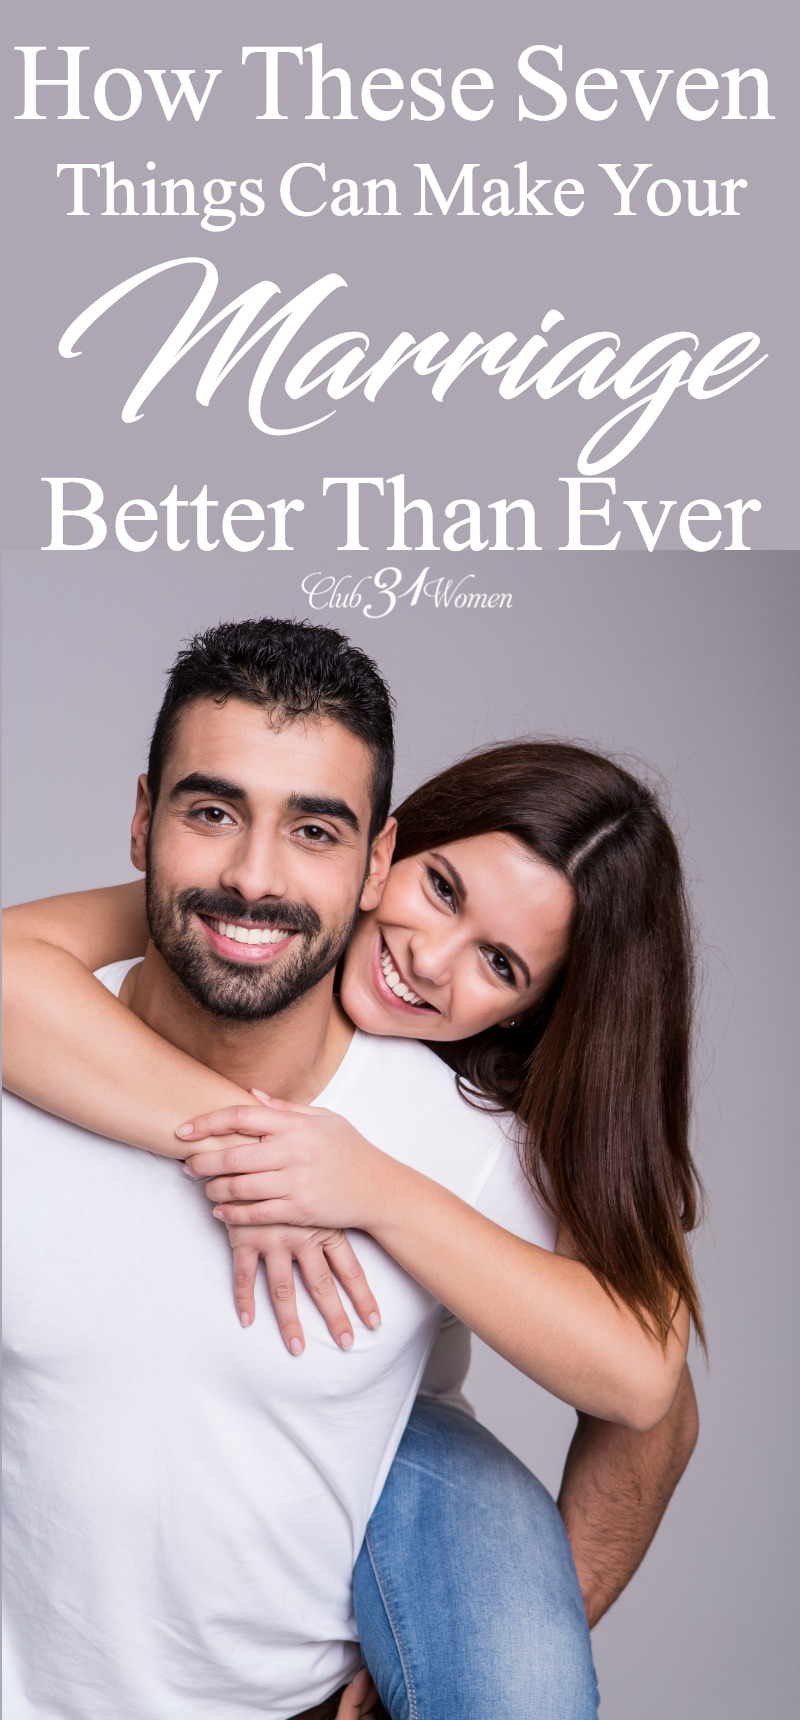 Does your marriage feel a little stale? What if there were some things you could do to make your marriage better than ever? via @Club31Women